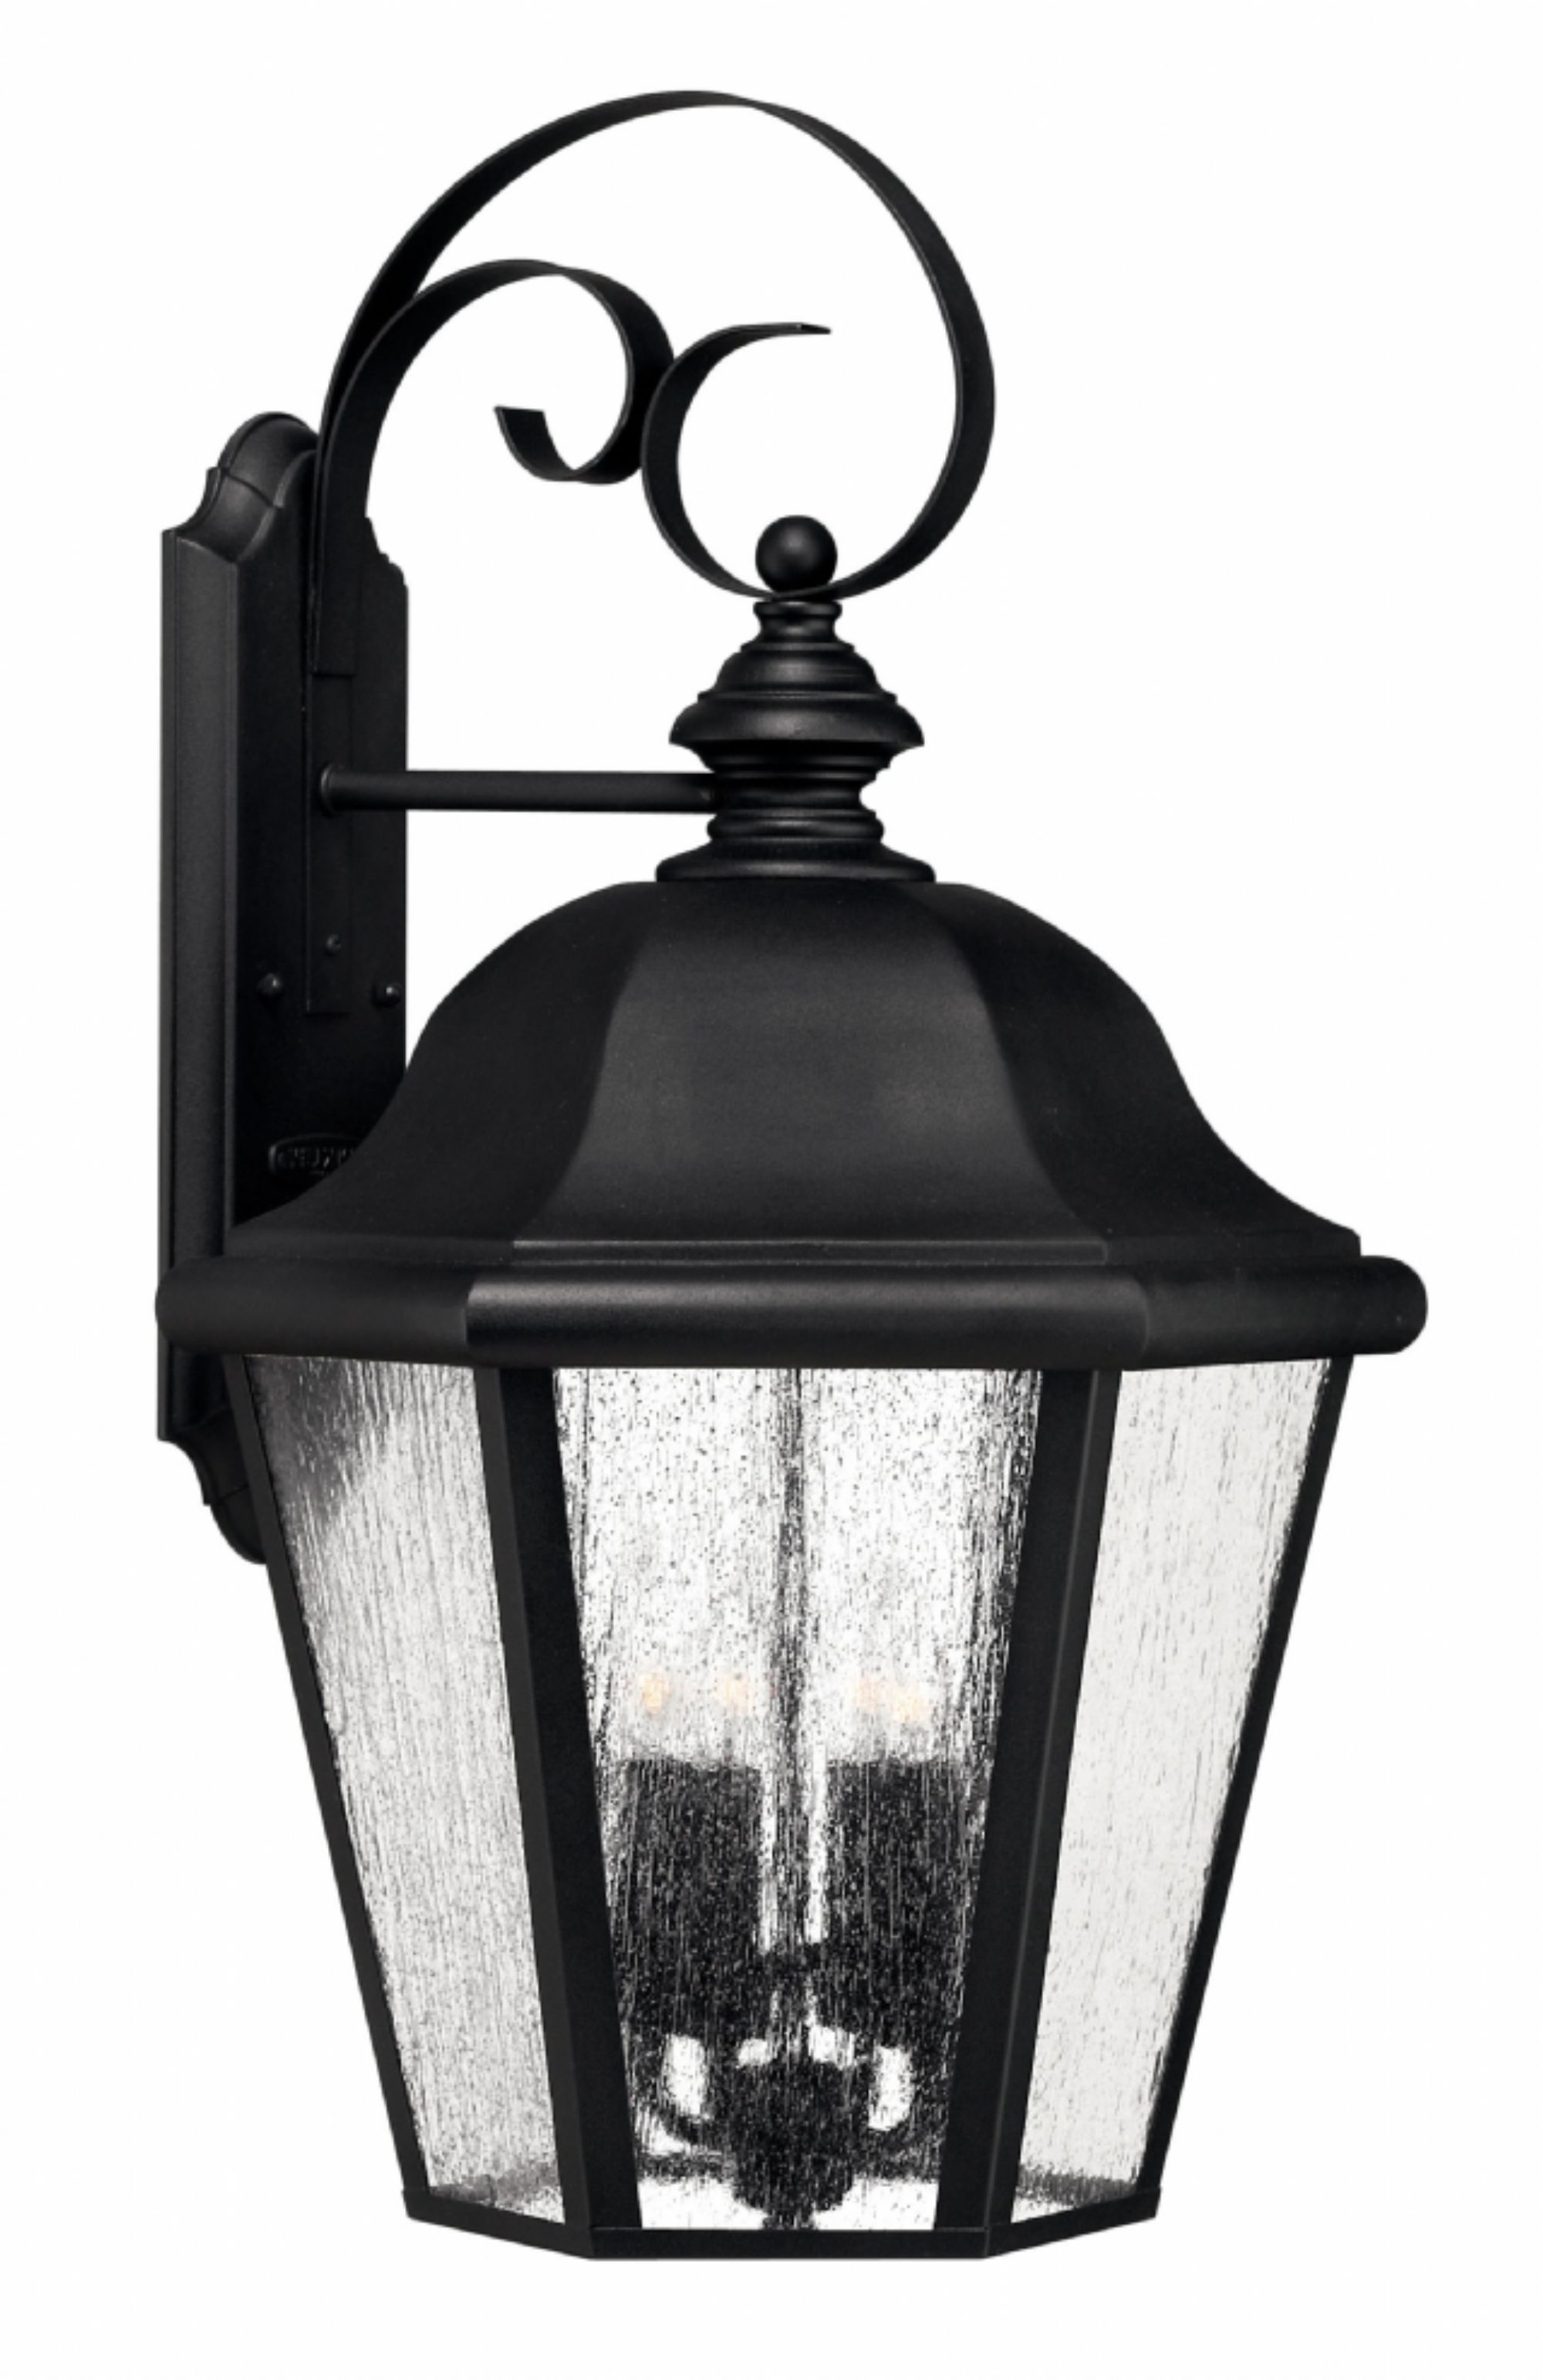 Black Edgewater > Exterior Wall Mount Throughout Well Liked Beach Outdoor Wall Lighting (Gallery 1 of 20)